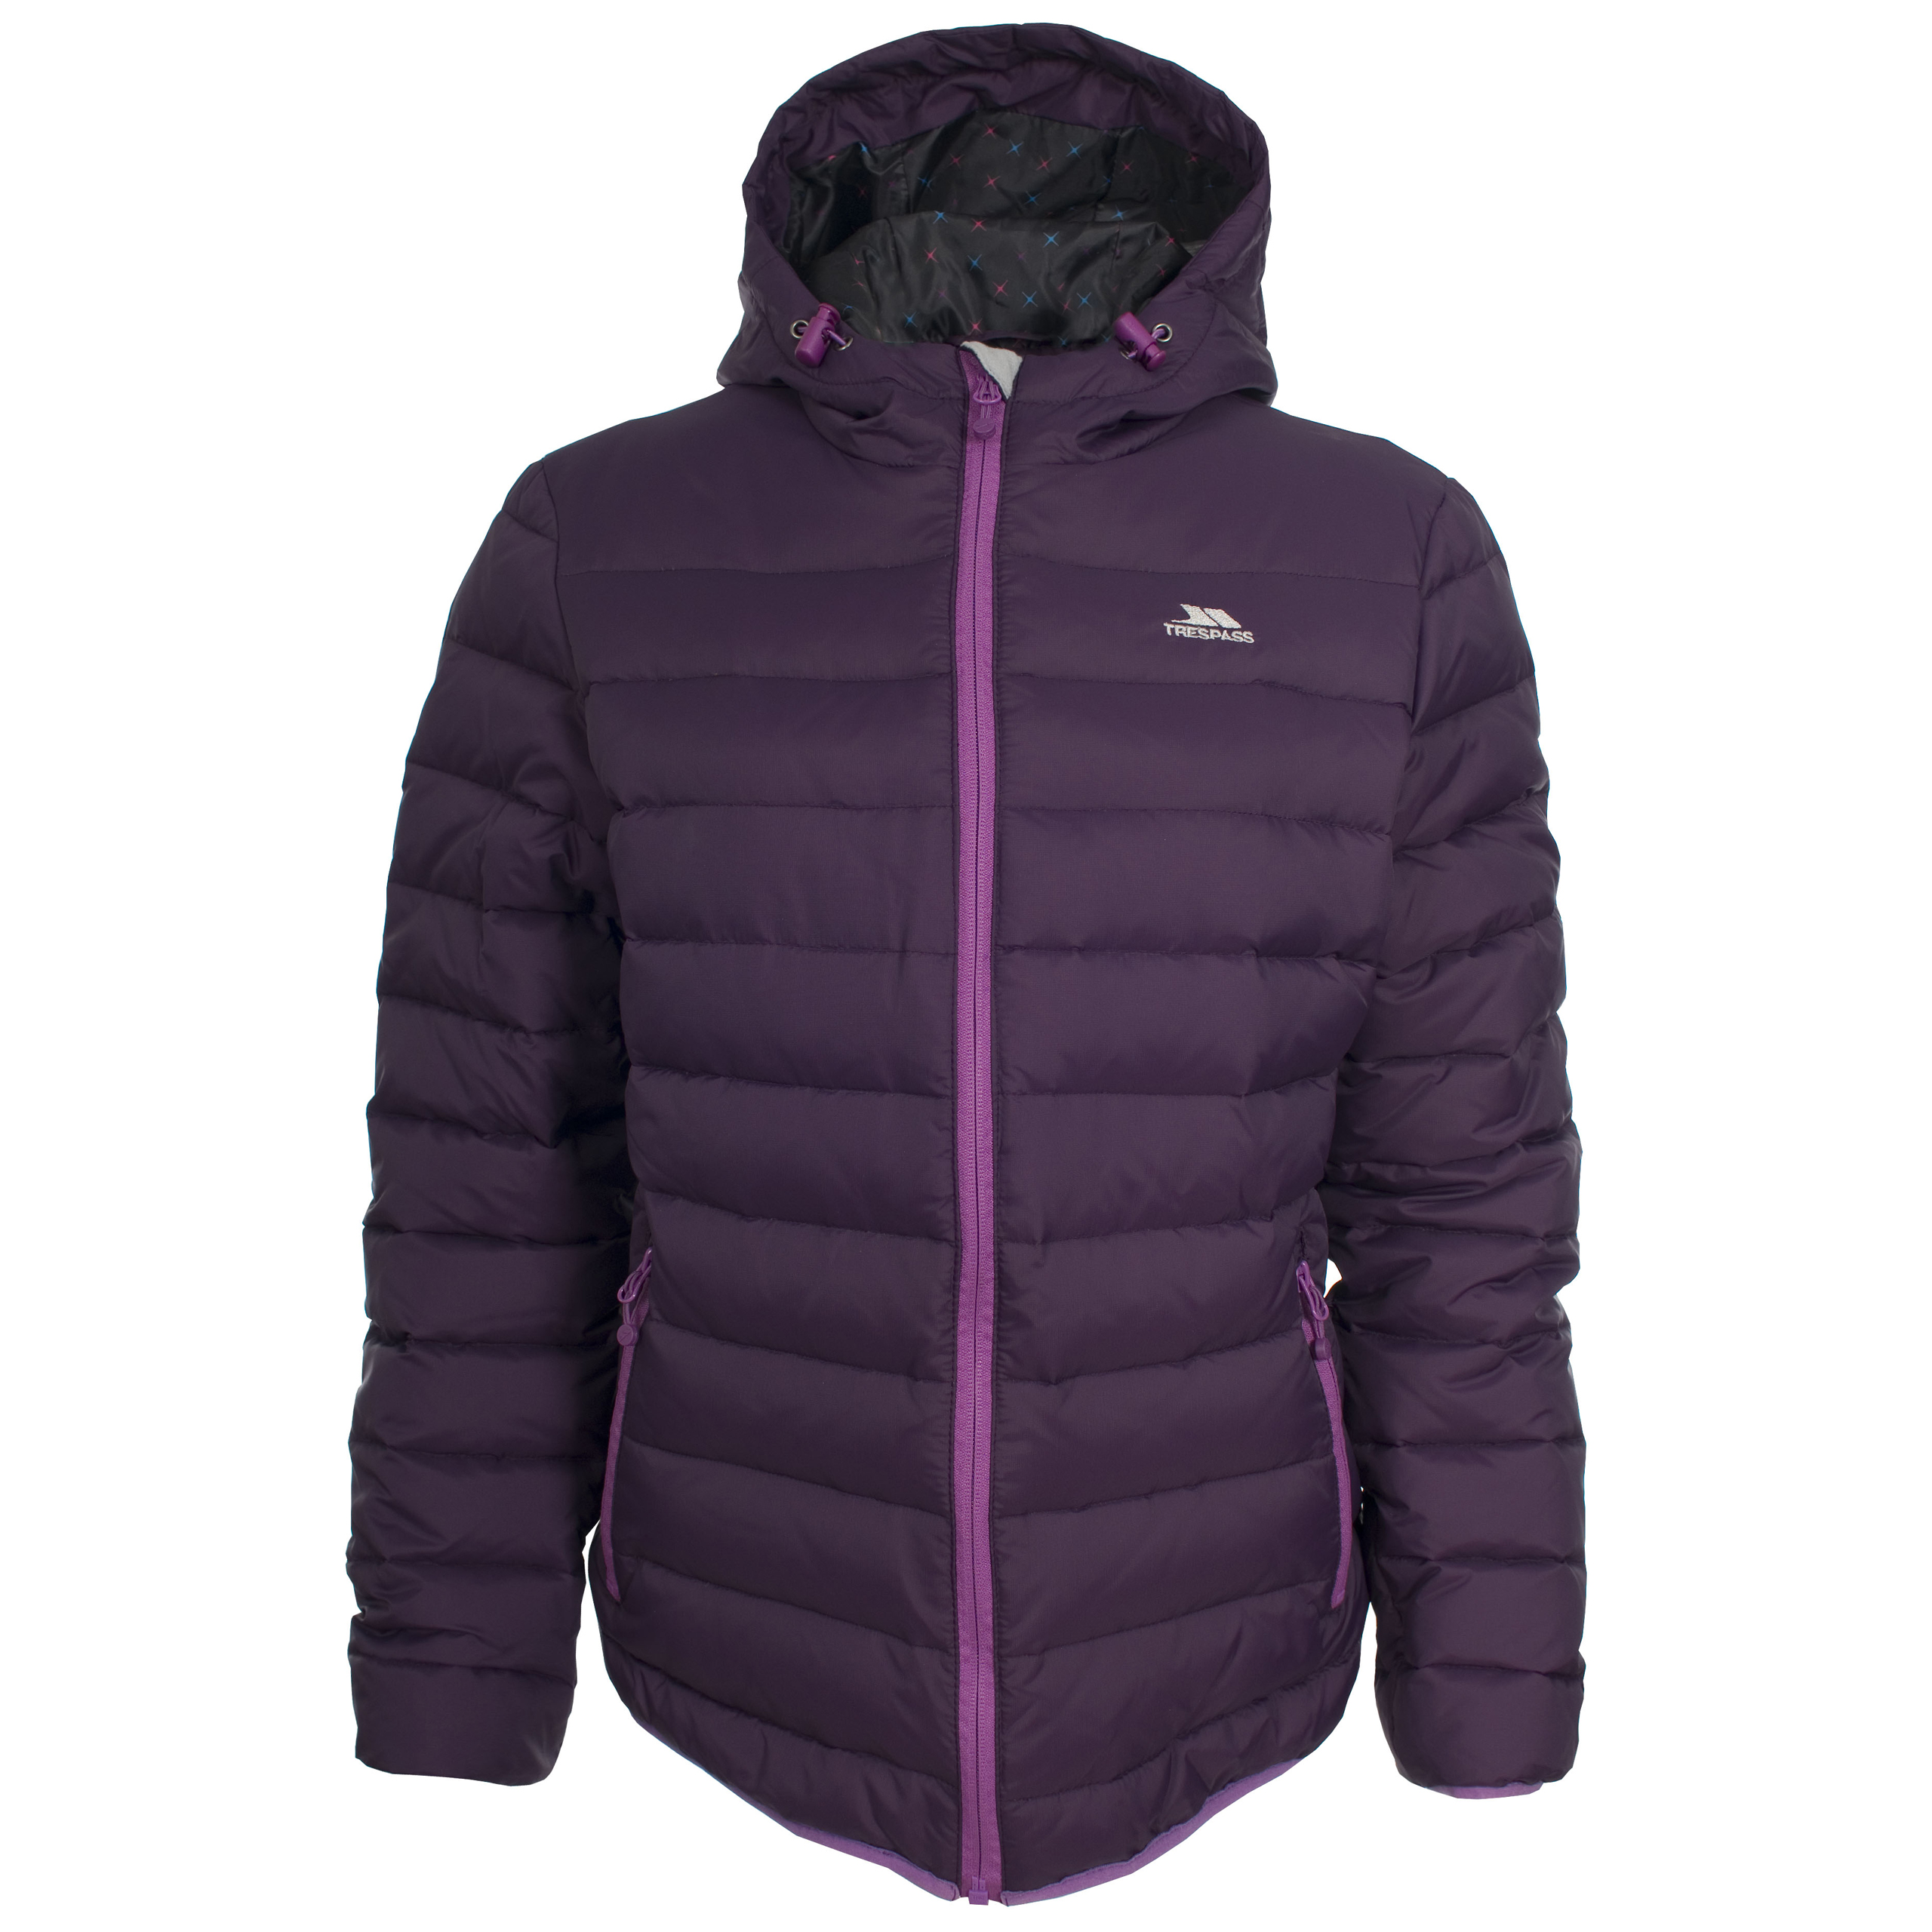 Shop for Men's Down Jackets at REI - FREE SHIPPING With $50 minimum purchase. Top quality, great selection and expert advice you can trust. % Satisfaction Guarantee.